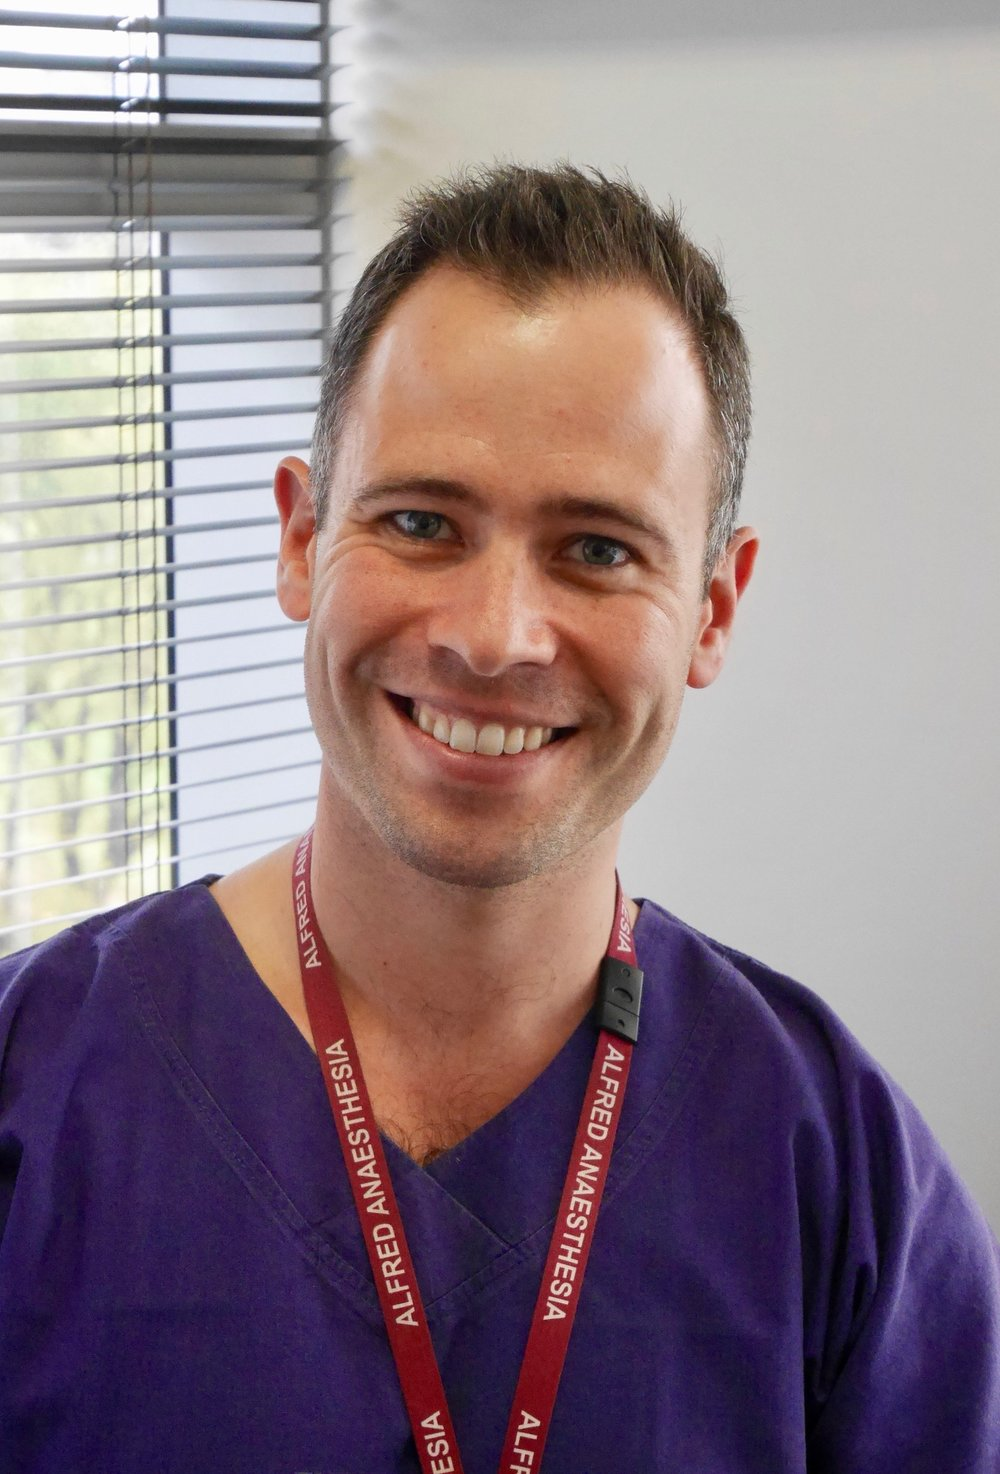 "<p><strong><span style=""color:#002975"">Simon Hendel</strong>Anaesthetist and Trauma Physician<a href=/simon-hendel>More →</a></p>"